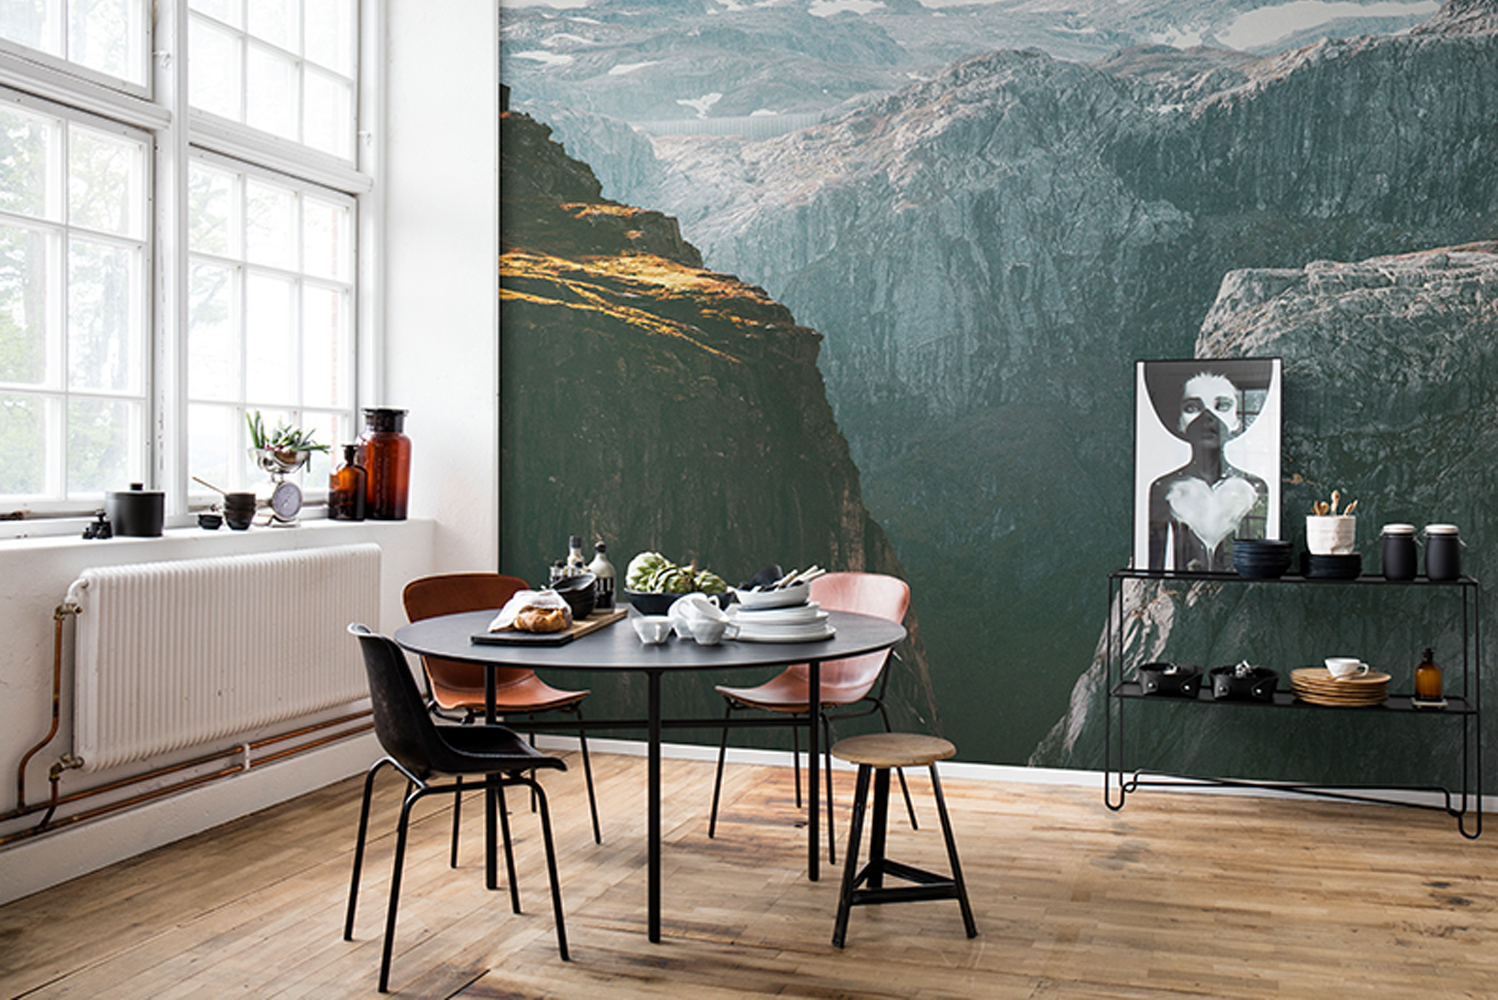 Using Rebel Walls' new matte and smooth finish Rebel Mattic, among the featured images are the rough bark of a pine tree, the slippery mountain slopes and the soft green moss of an untouched forest.